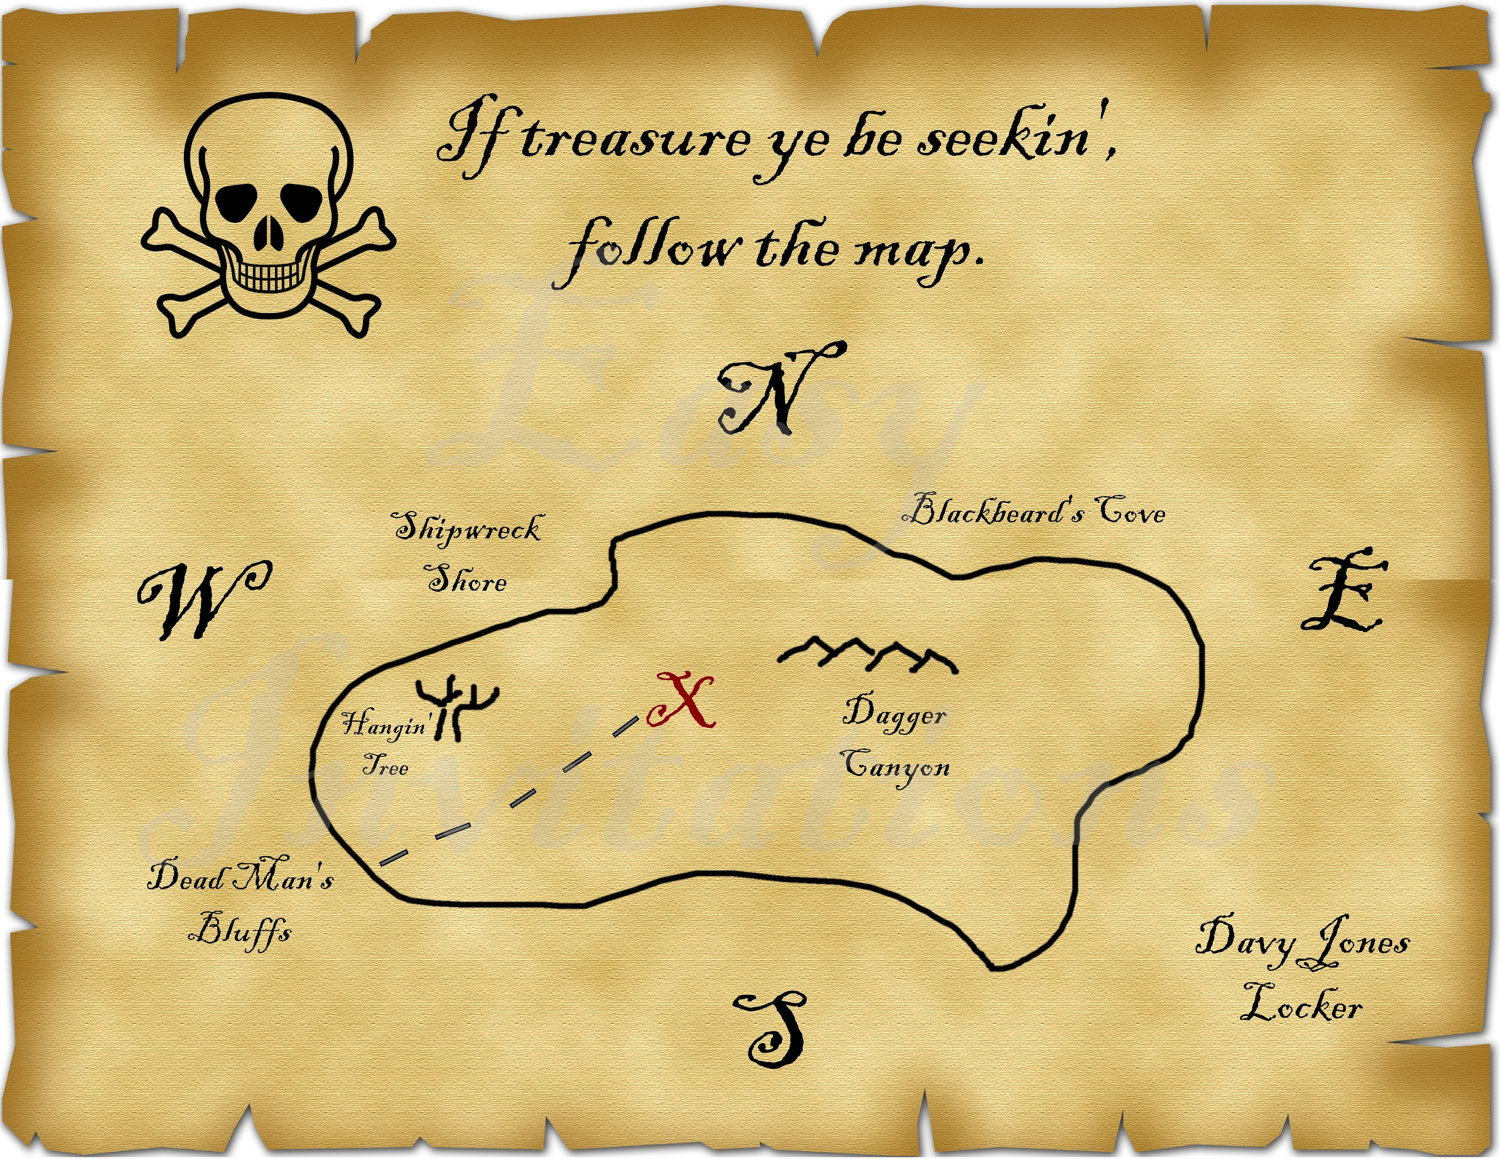 simple treasure maps vintage - photo #49